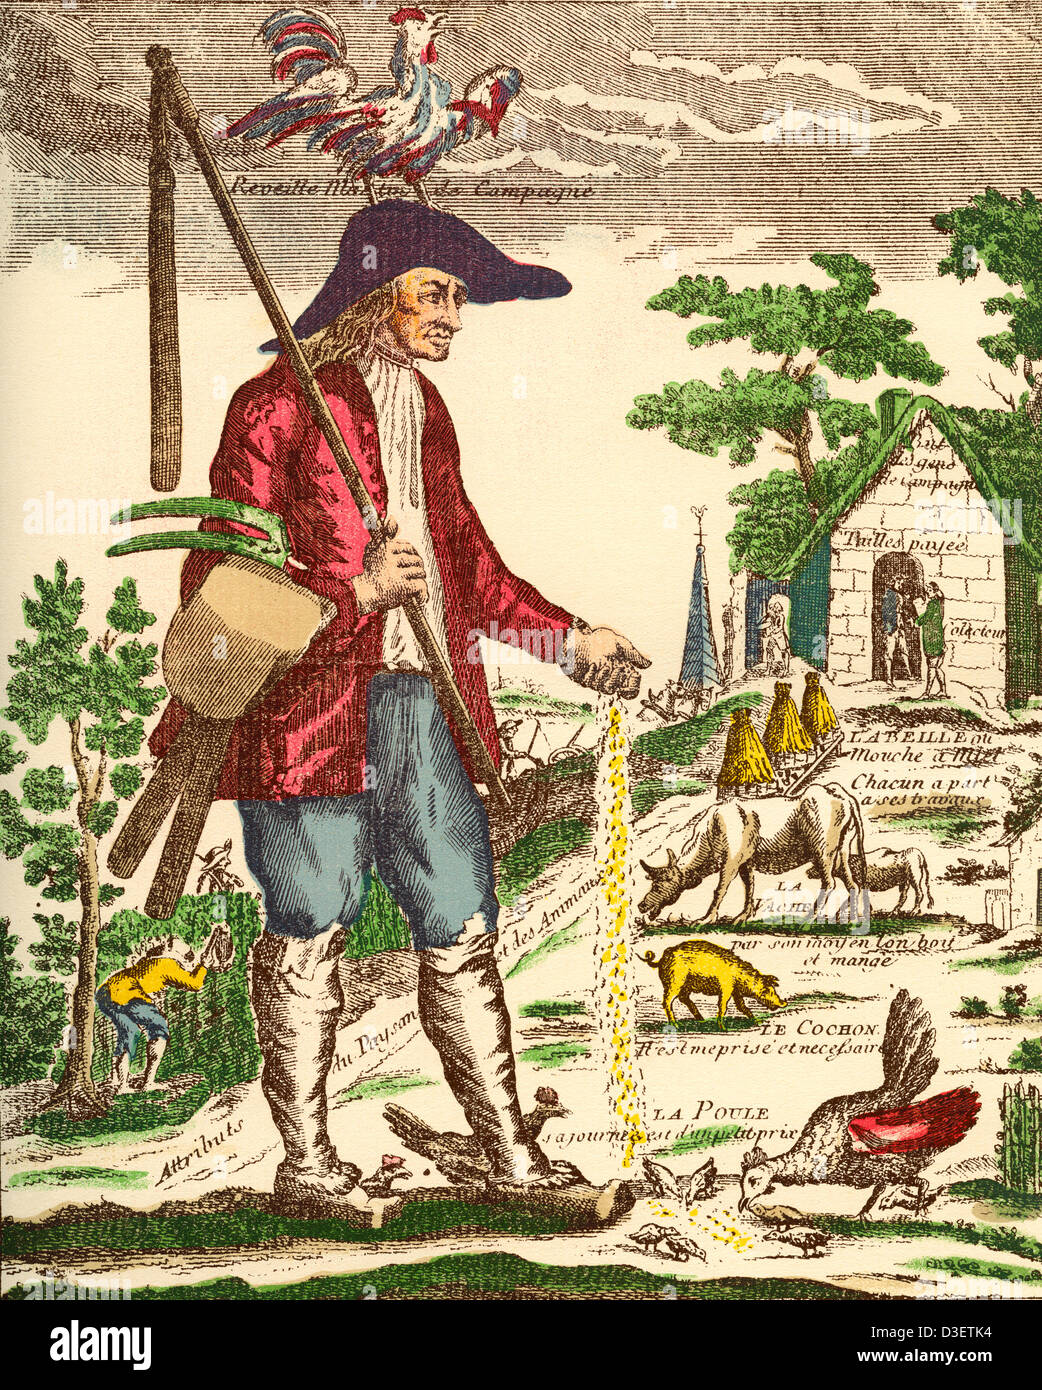 A French village peasant during the 18th century. - Stock Image